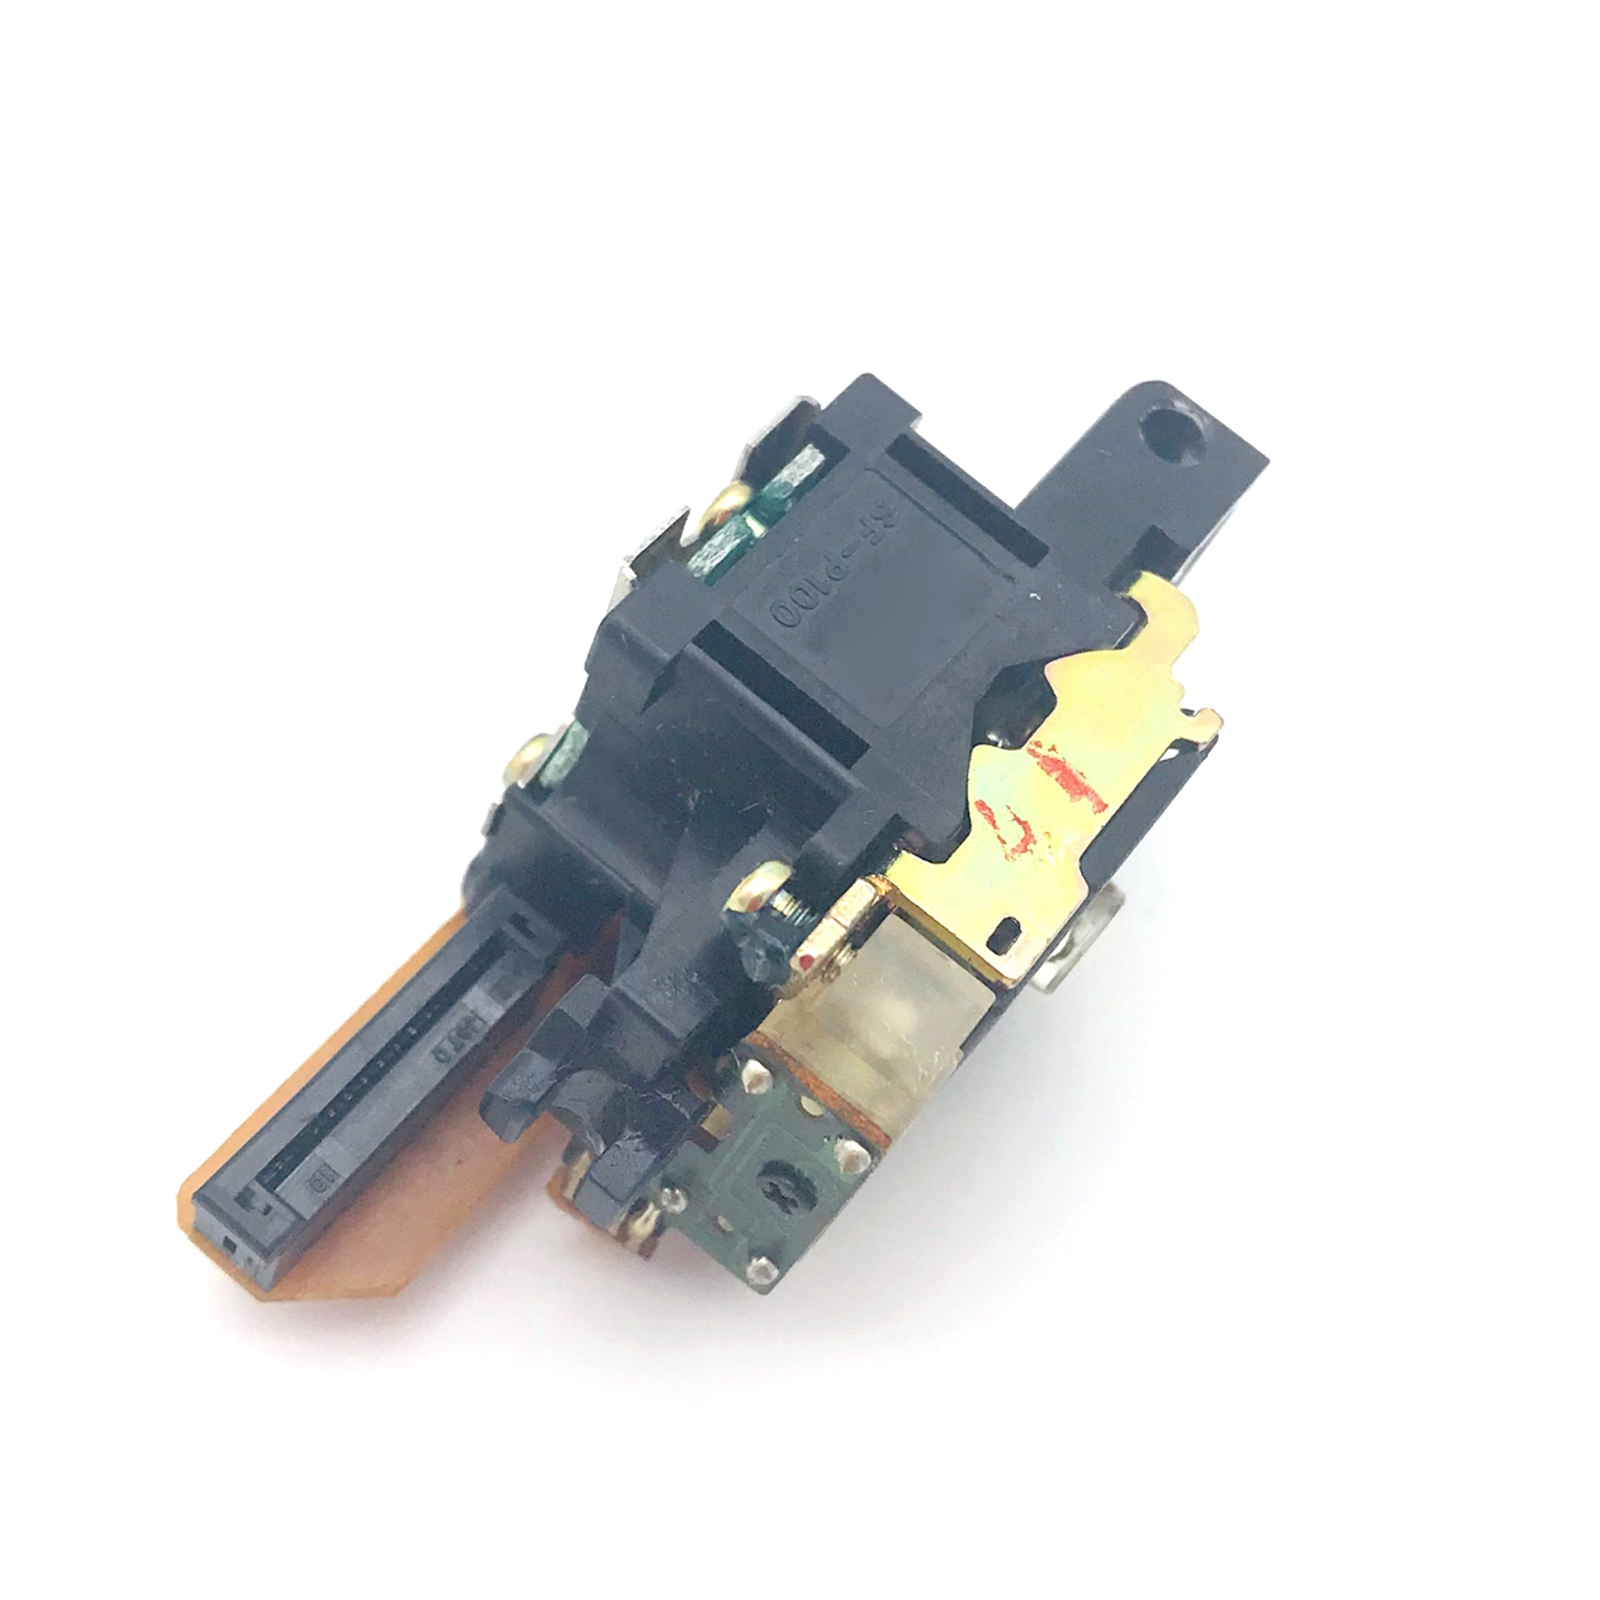 New DX-7711DX-7911C-725C-729 Laser Head for Sanyo CD Player Complete Mechanism